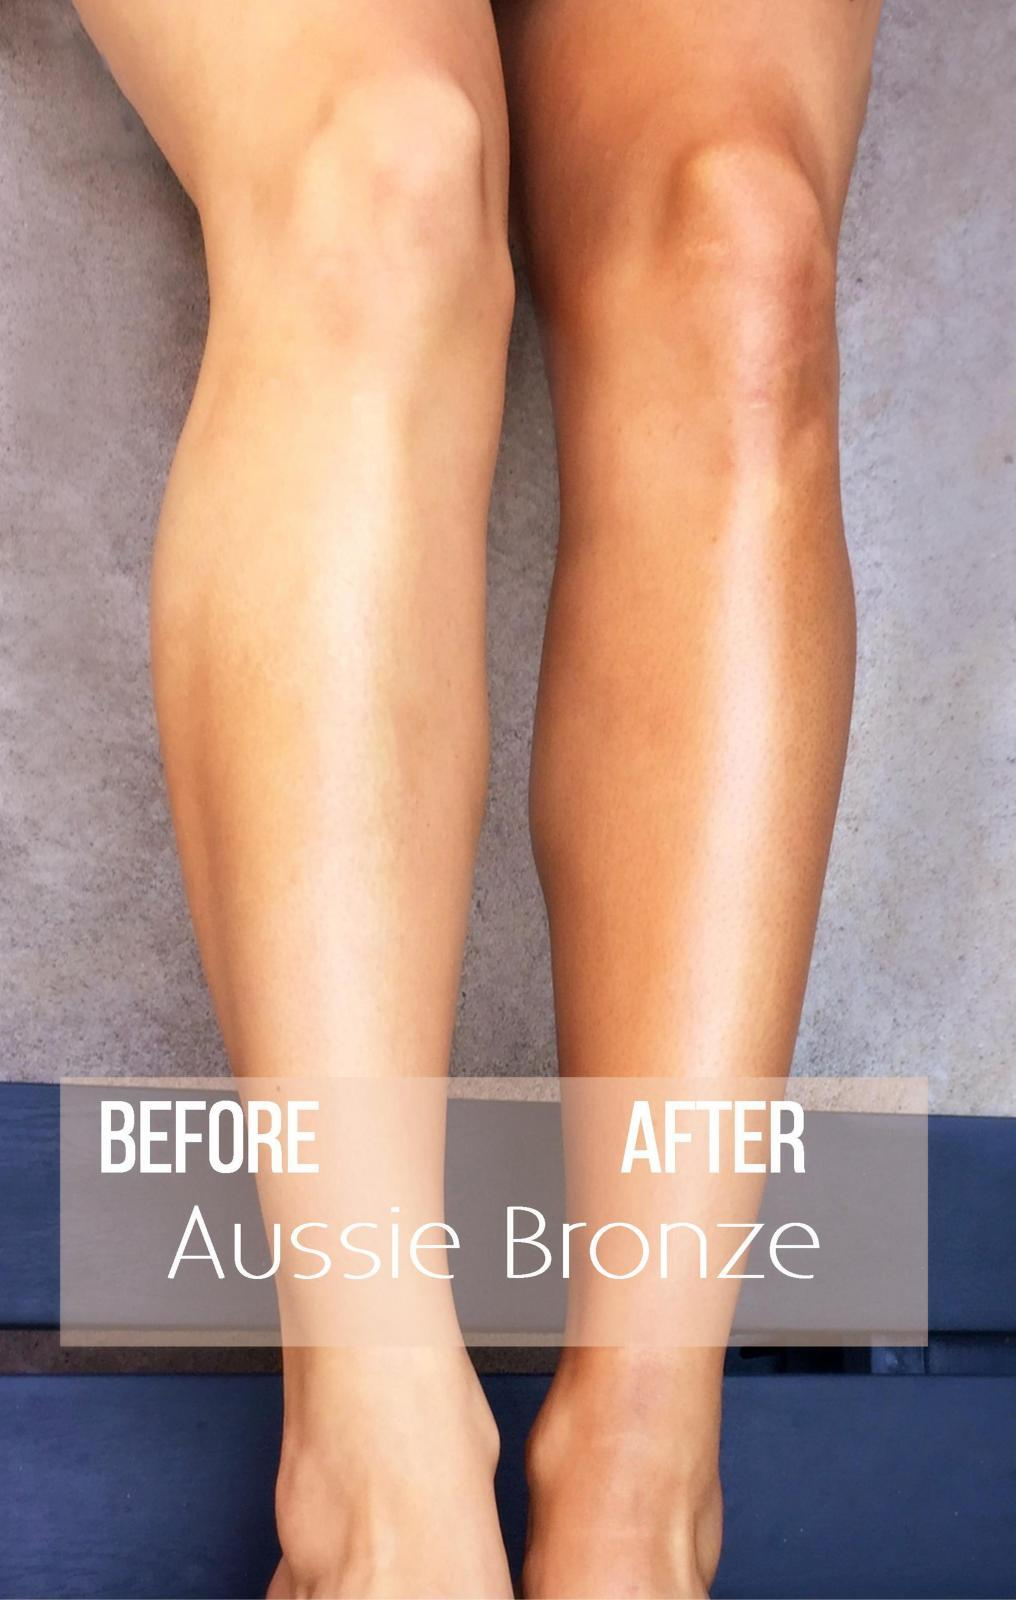 Aussie Bronze | Organic, Natural, Toxin Free Tanning